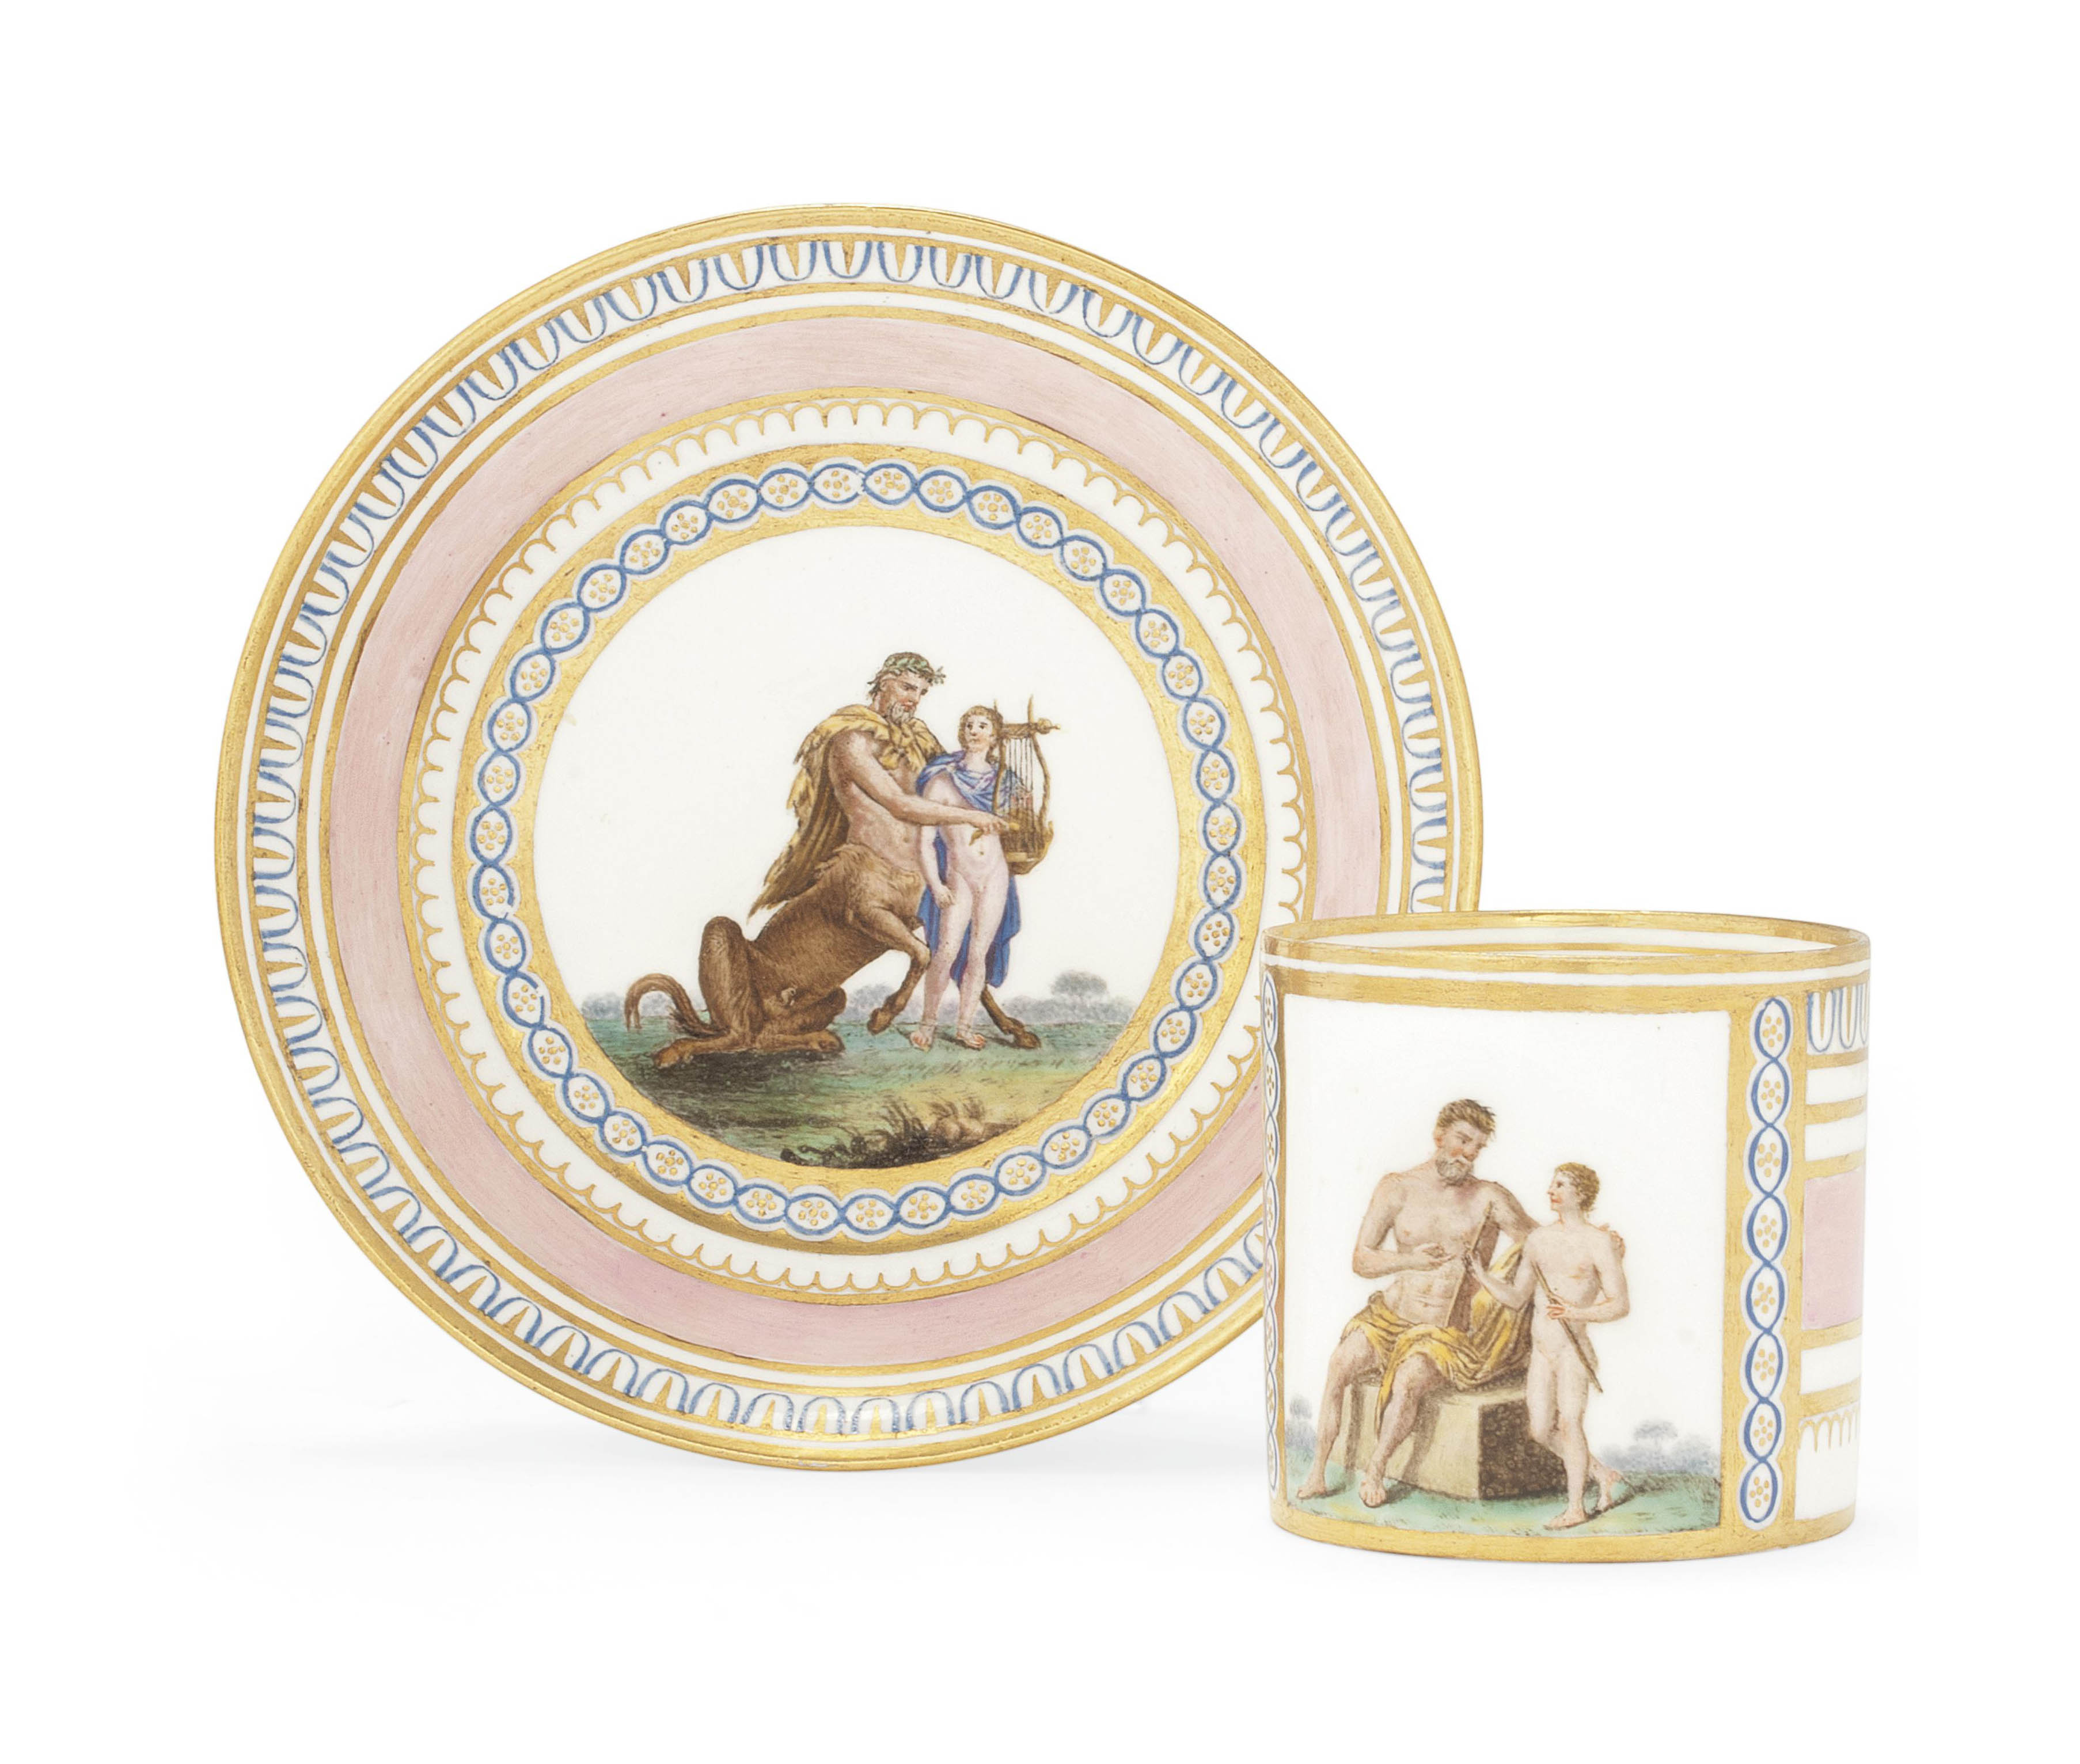 A NAPLES (REAL FABBRICA FERDINANDEA) COFFEE-CAN AND SAUCER